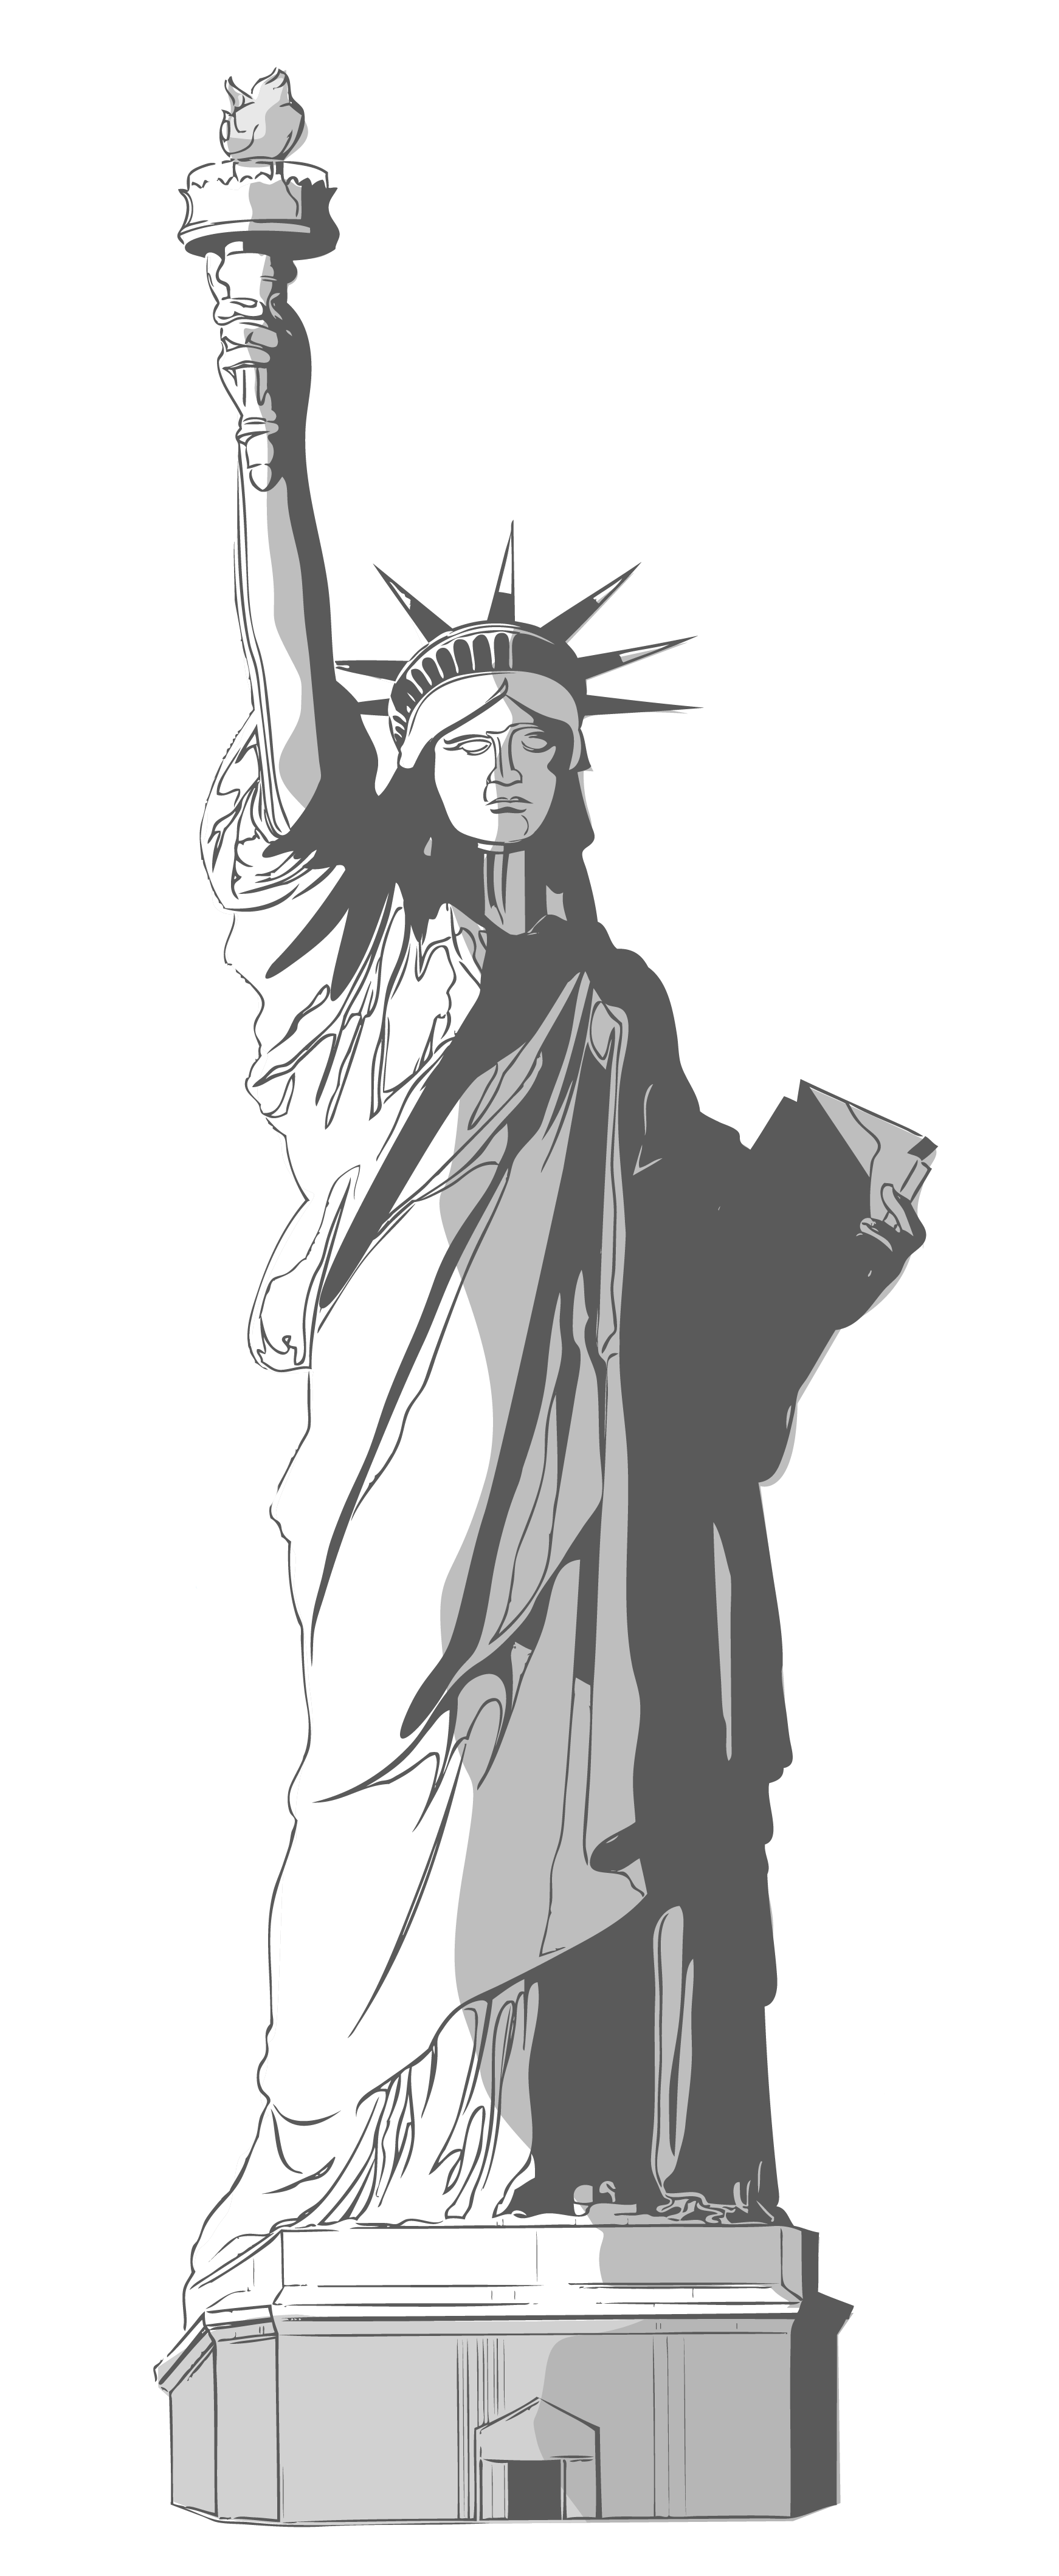 Statue of liberty clipart png library download Statue of Liberty PNG Clipart | Gallery Yopriceville - High ... png library download